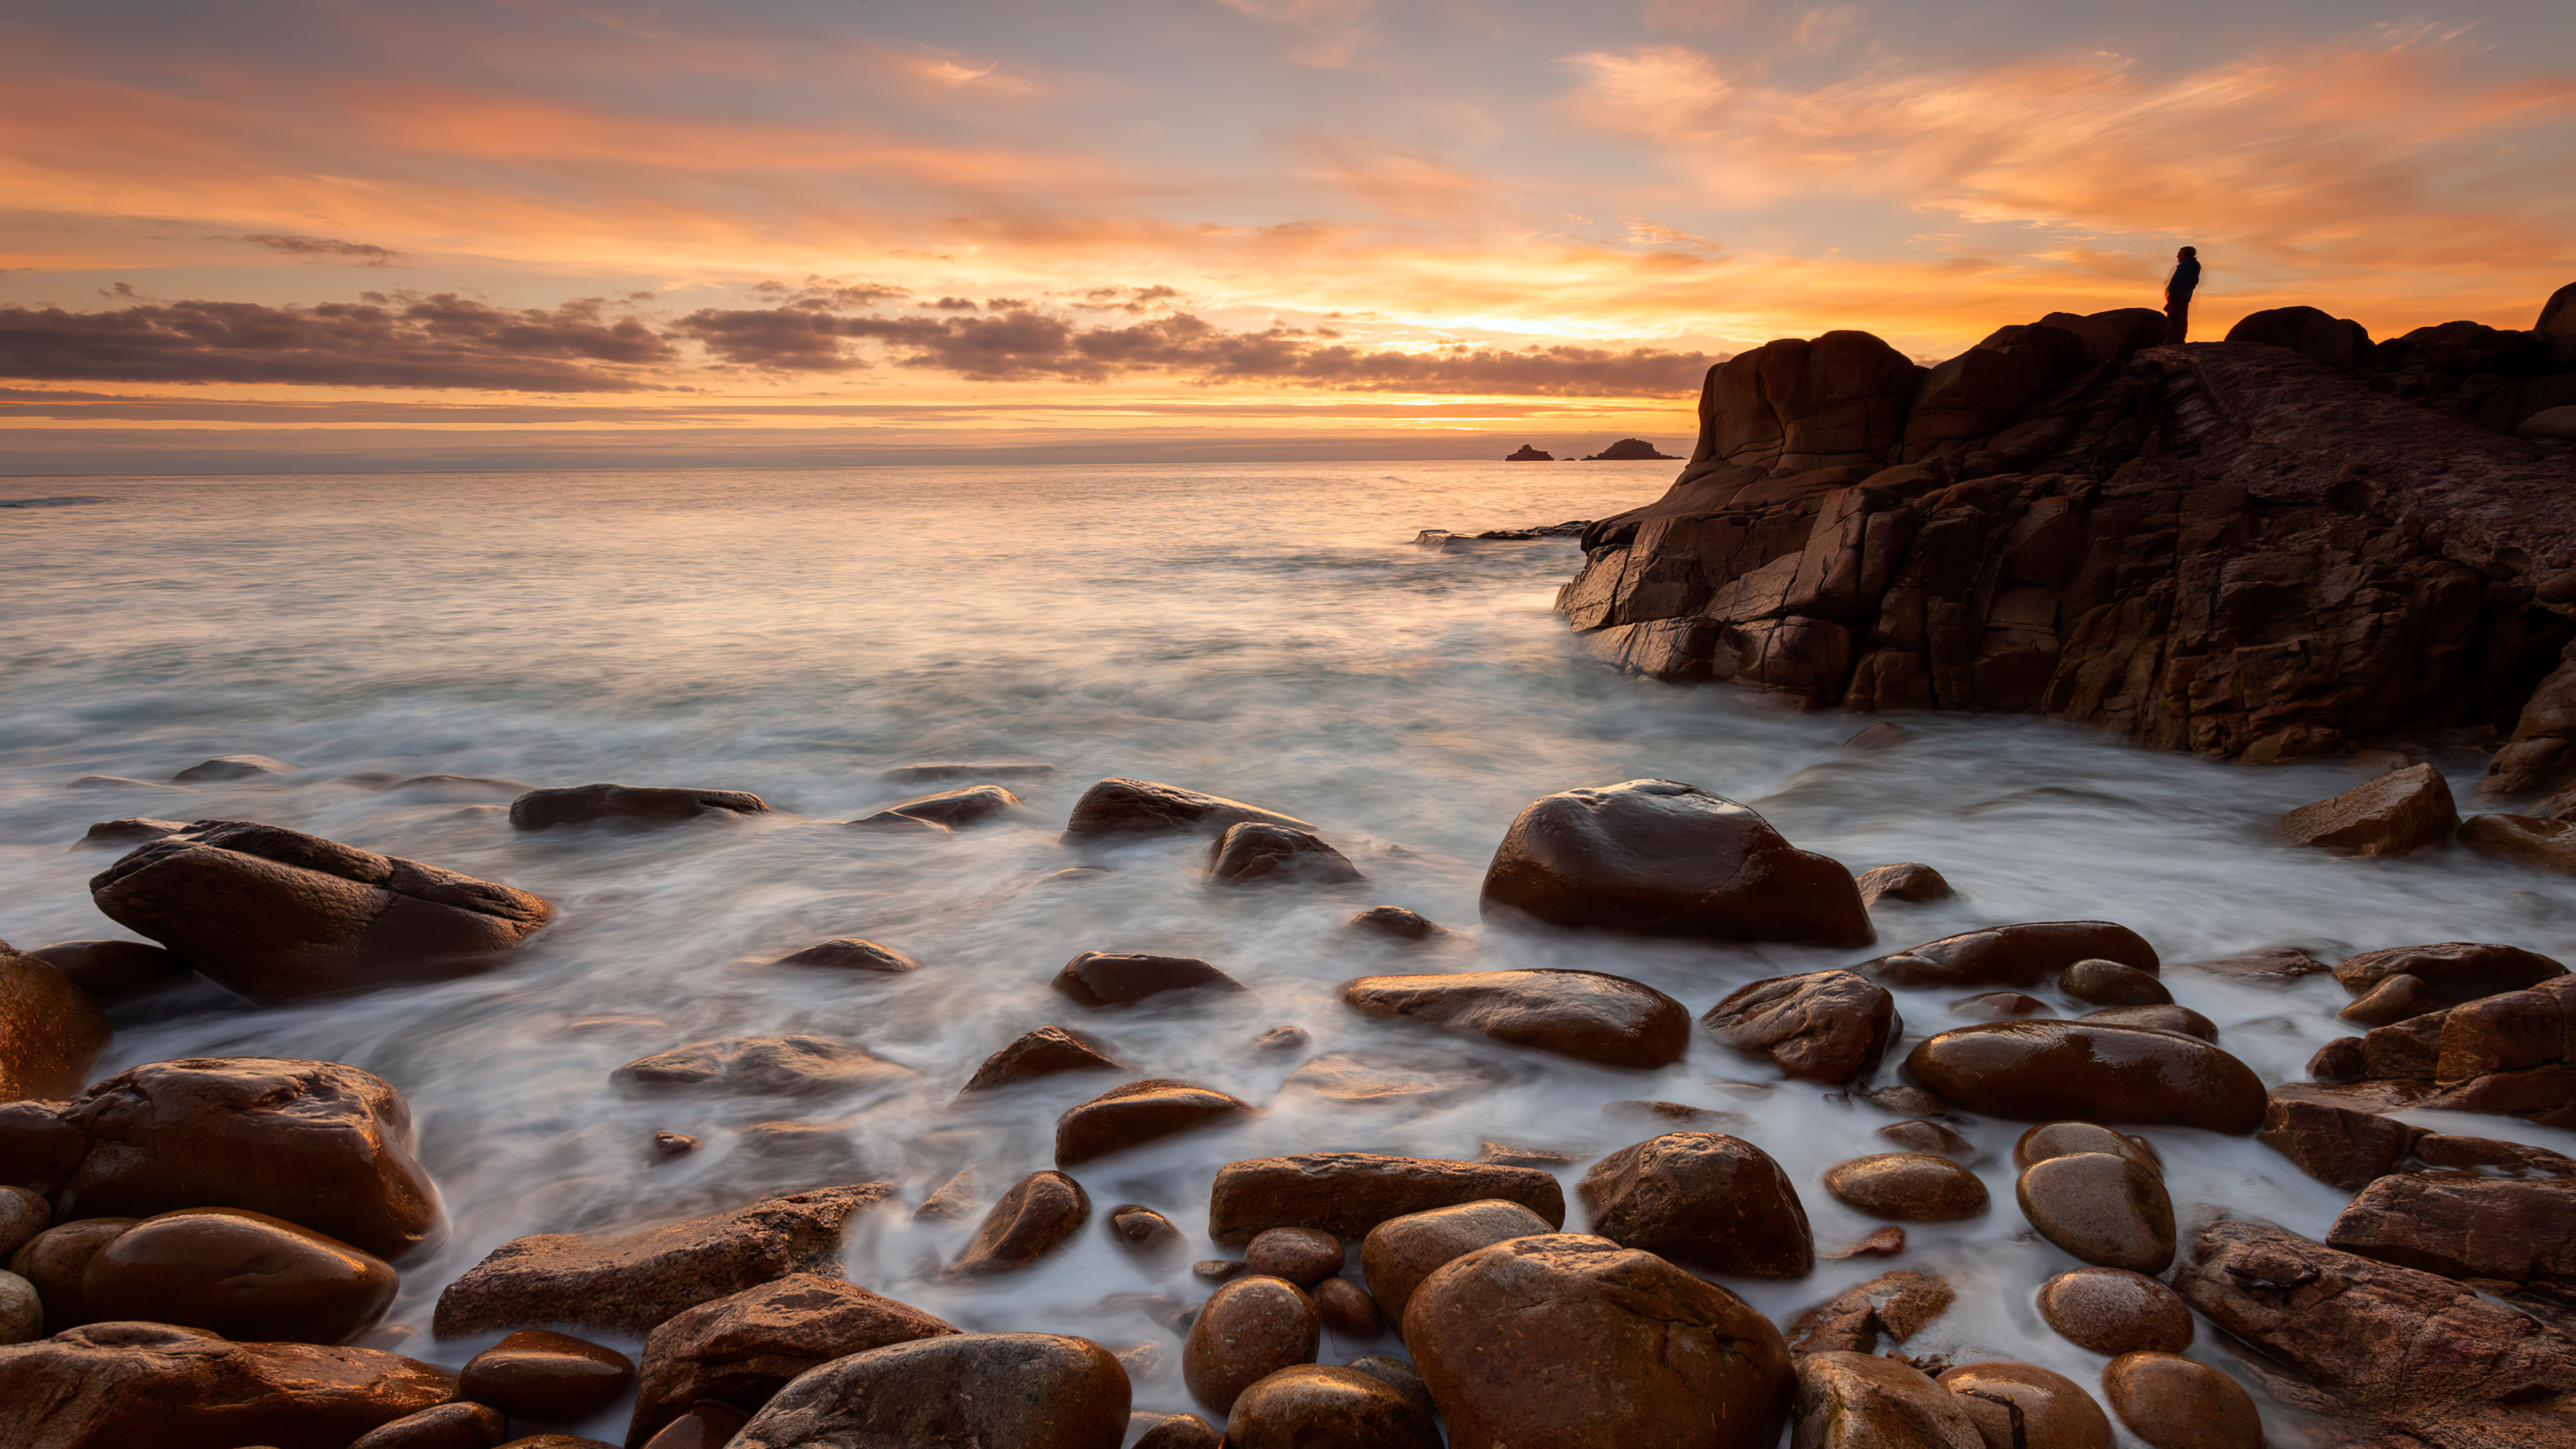 rocks shore long exposure 4k 1602501691 - Rocks Shore Long Exposure 4k - Rocks Shore Long Exposure 4k wallpapers